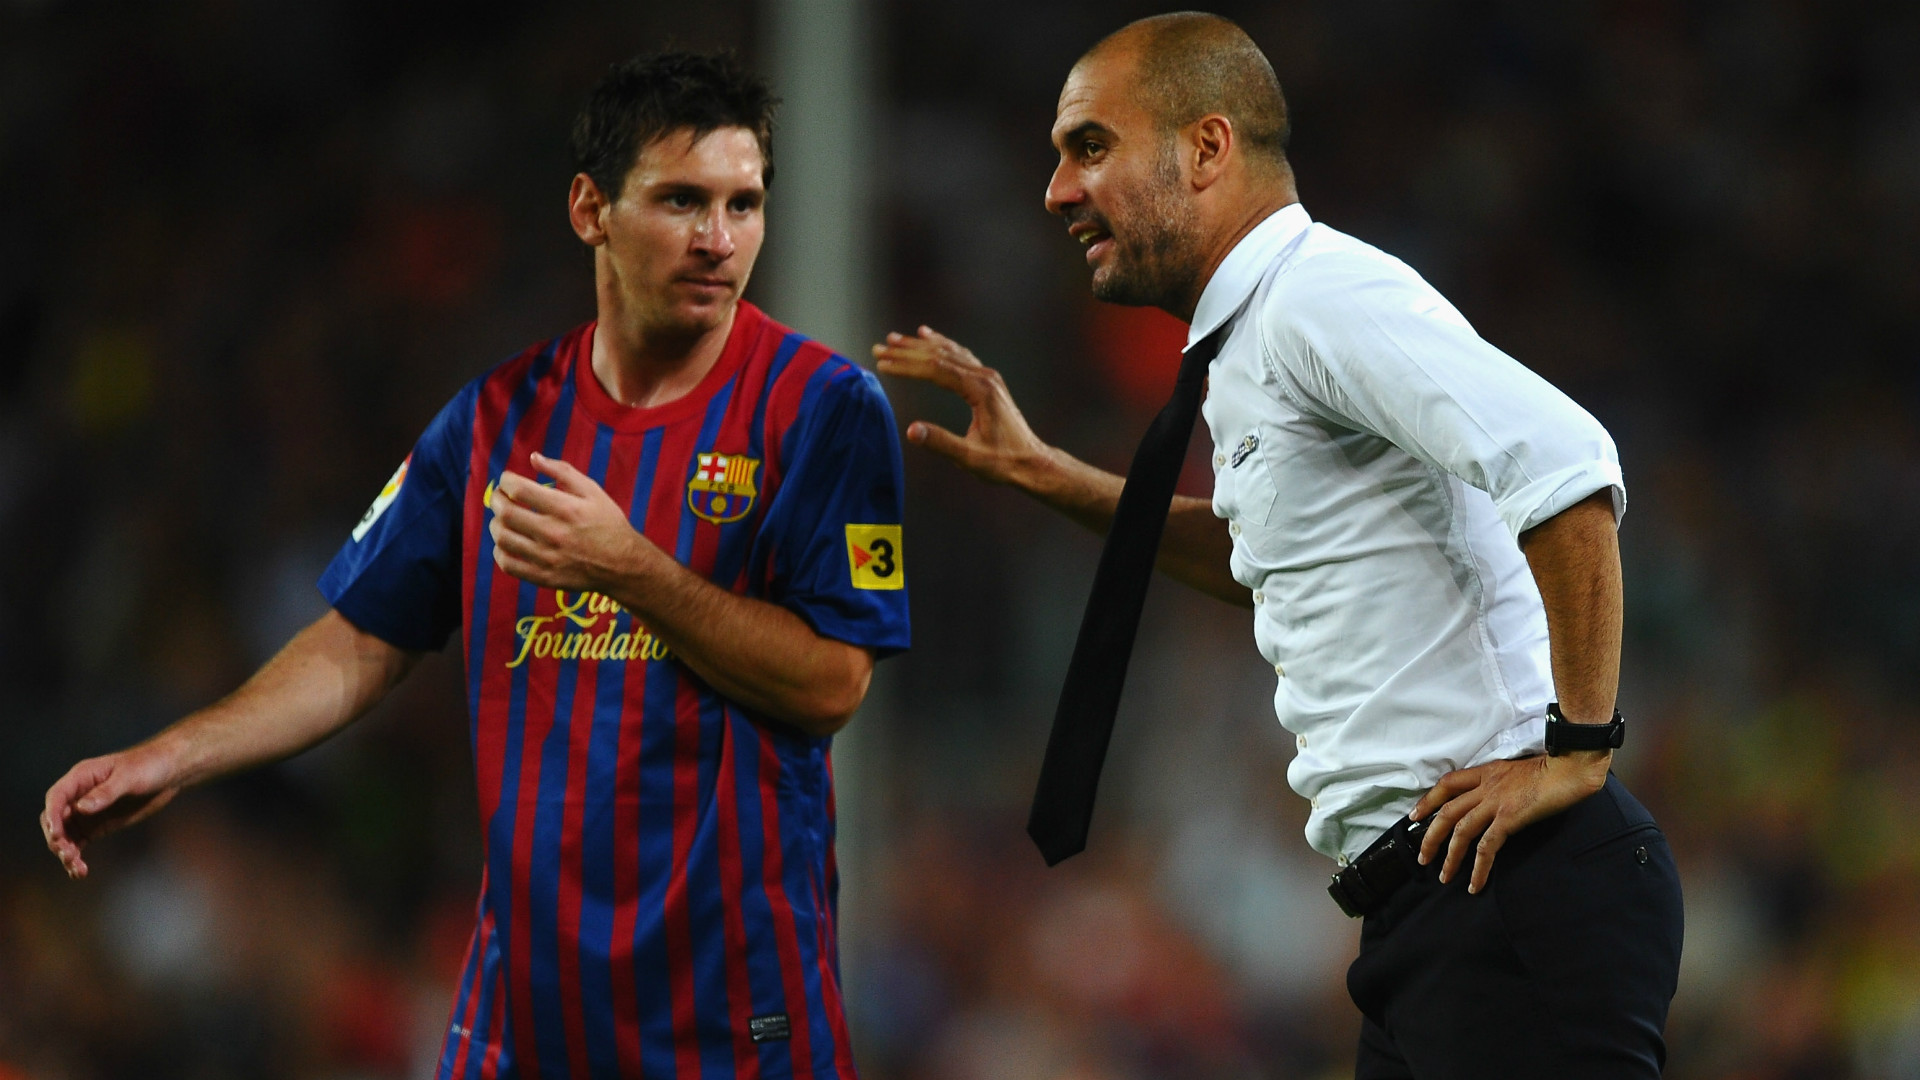 Lionel Messi: Pep Guardiola explains why Barcelona star is the best player  he has ever seen | Goal.com